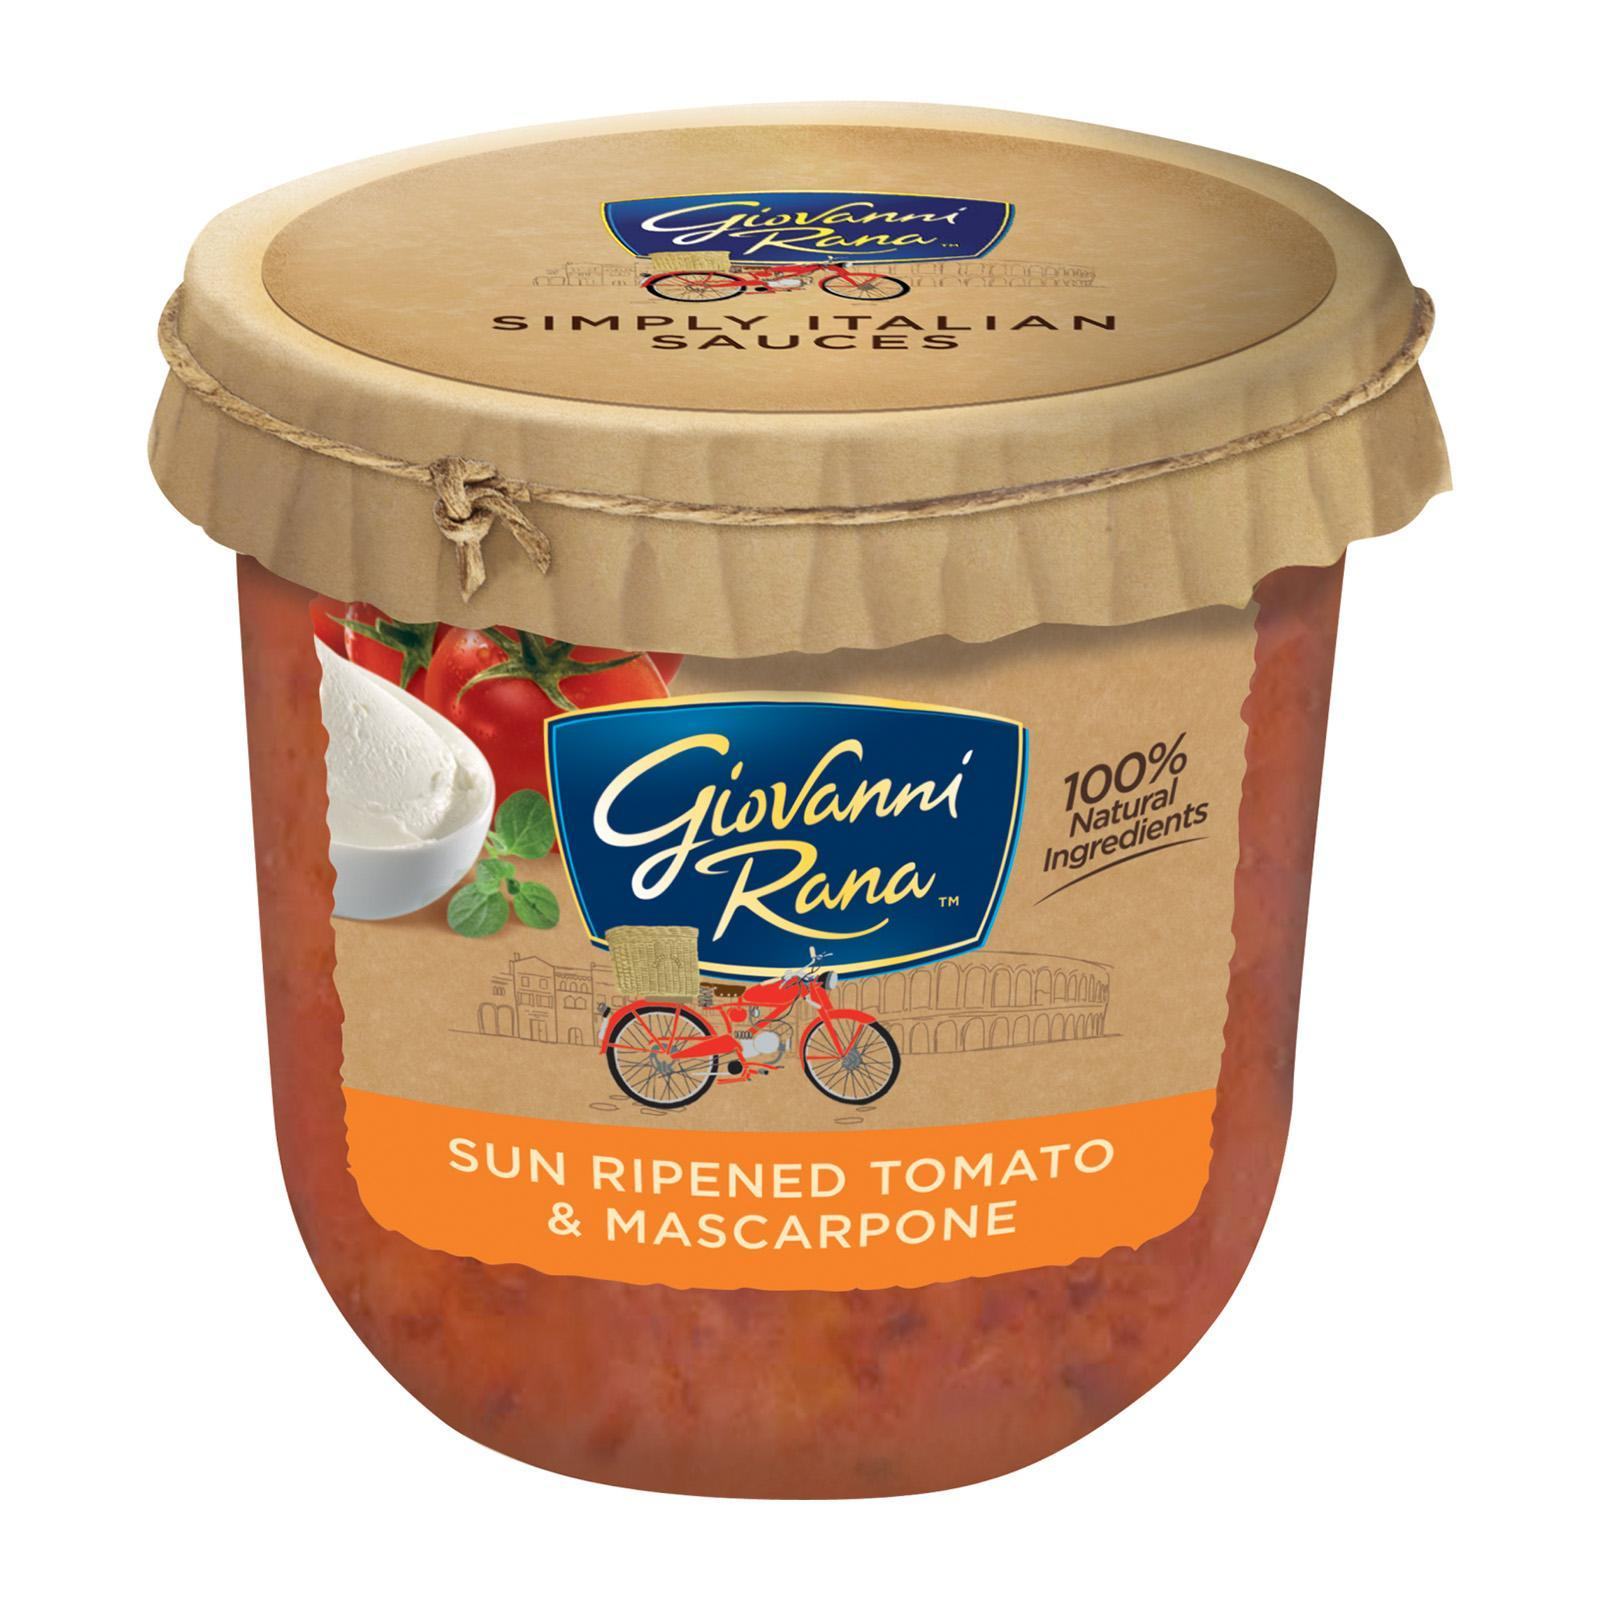 Giovanni Rana Simply Italian Sauce Sun Ripened Tomato And Mascarpone By Redmart.